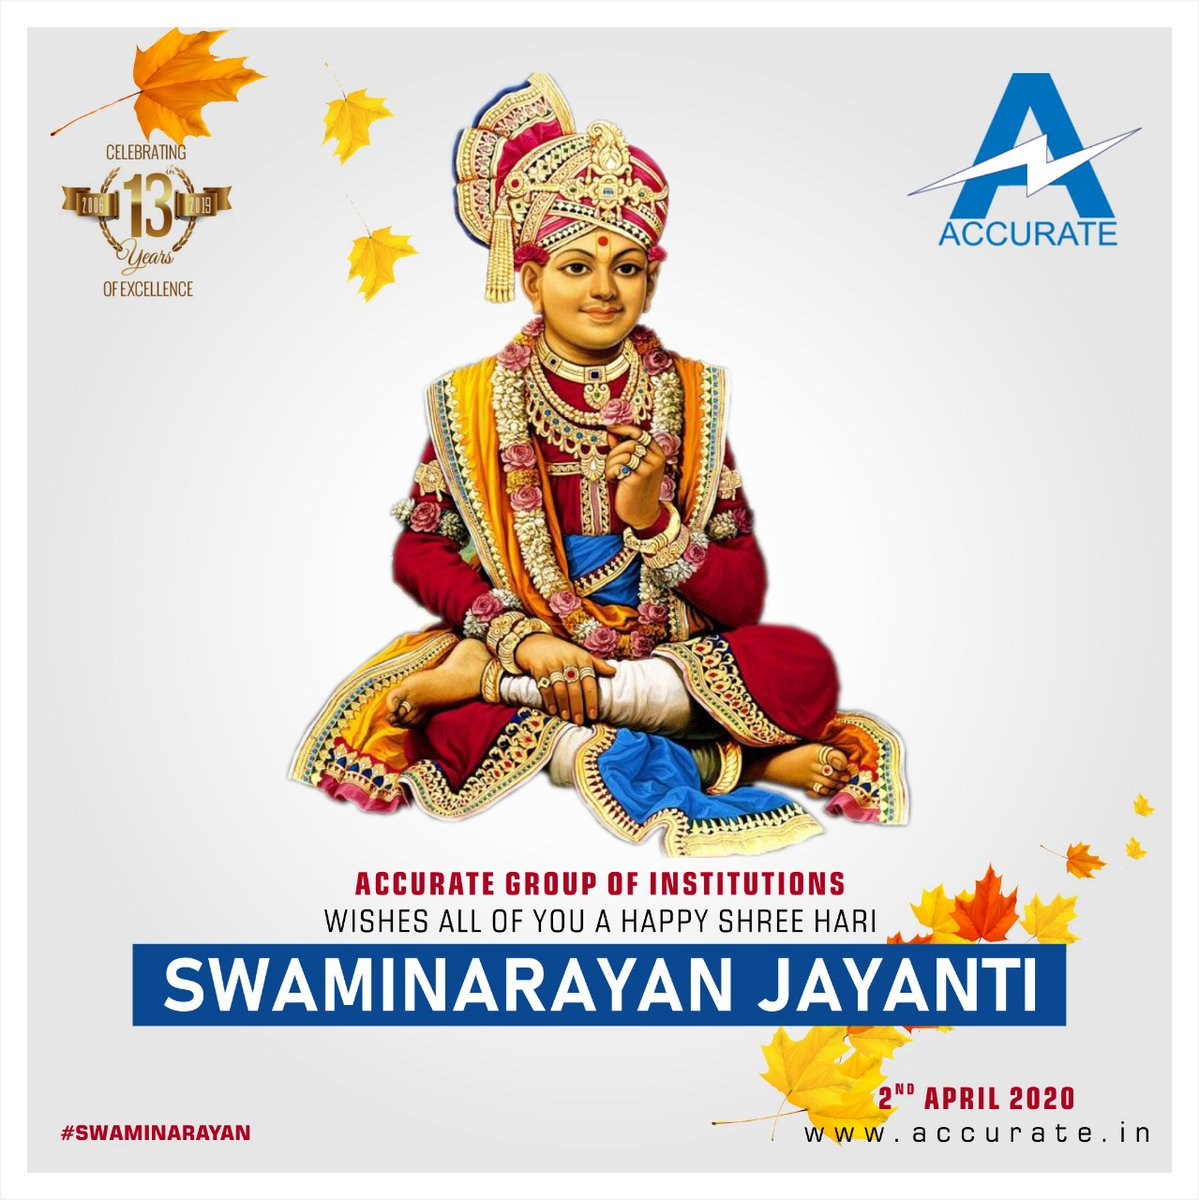 ACCURATE GROUP OF INSTITUTIONS WISHES ALL OF YOU A HAPPY SHREE HARI SWAMINARAYAN JAYANTI  #shreehari #swaminarayan #jayanti #happy #joy #health #accuratecampus #greaternoida